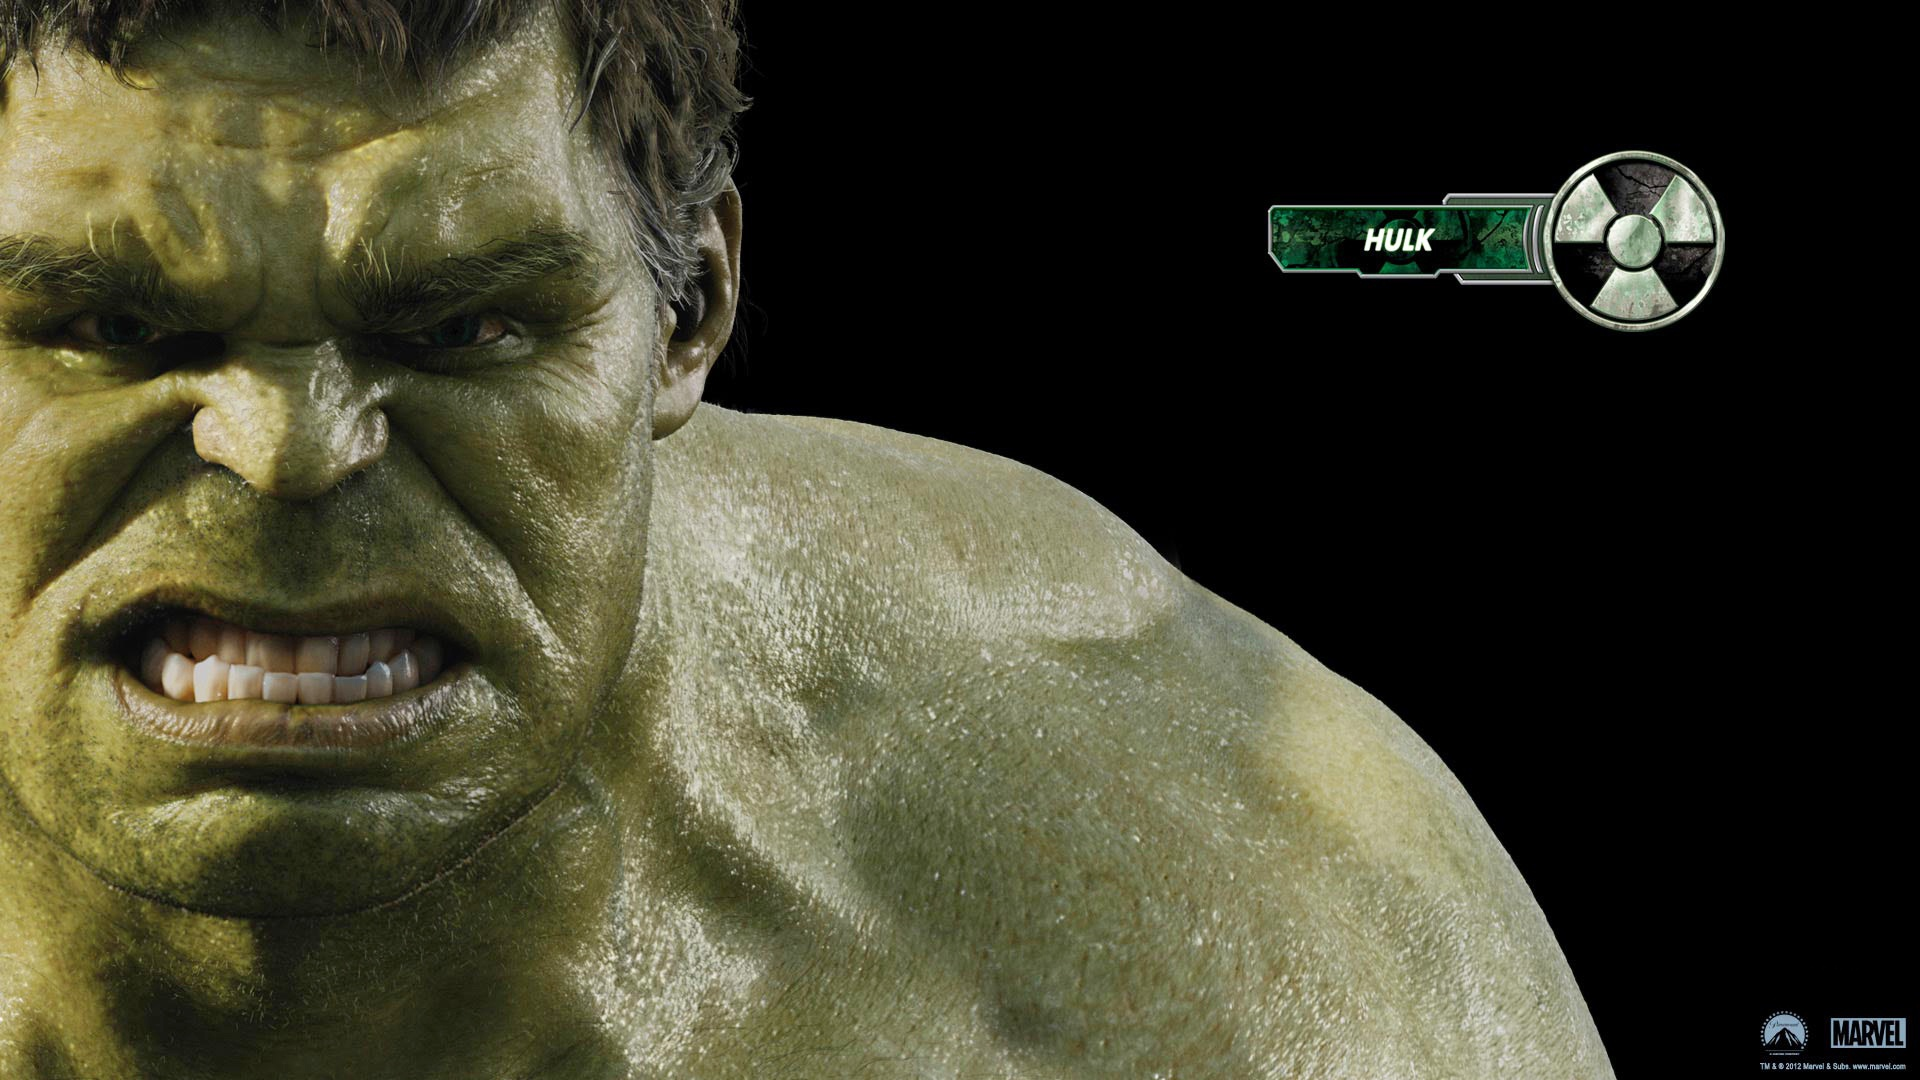 Hulk in Avengers Movie 1867.07 Kb